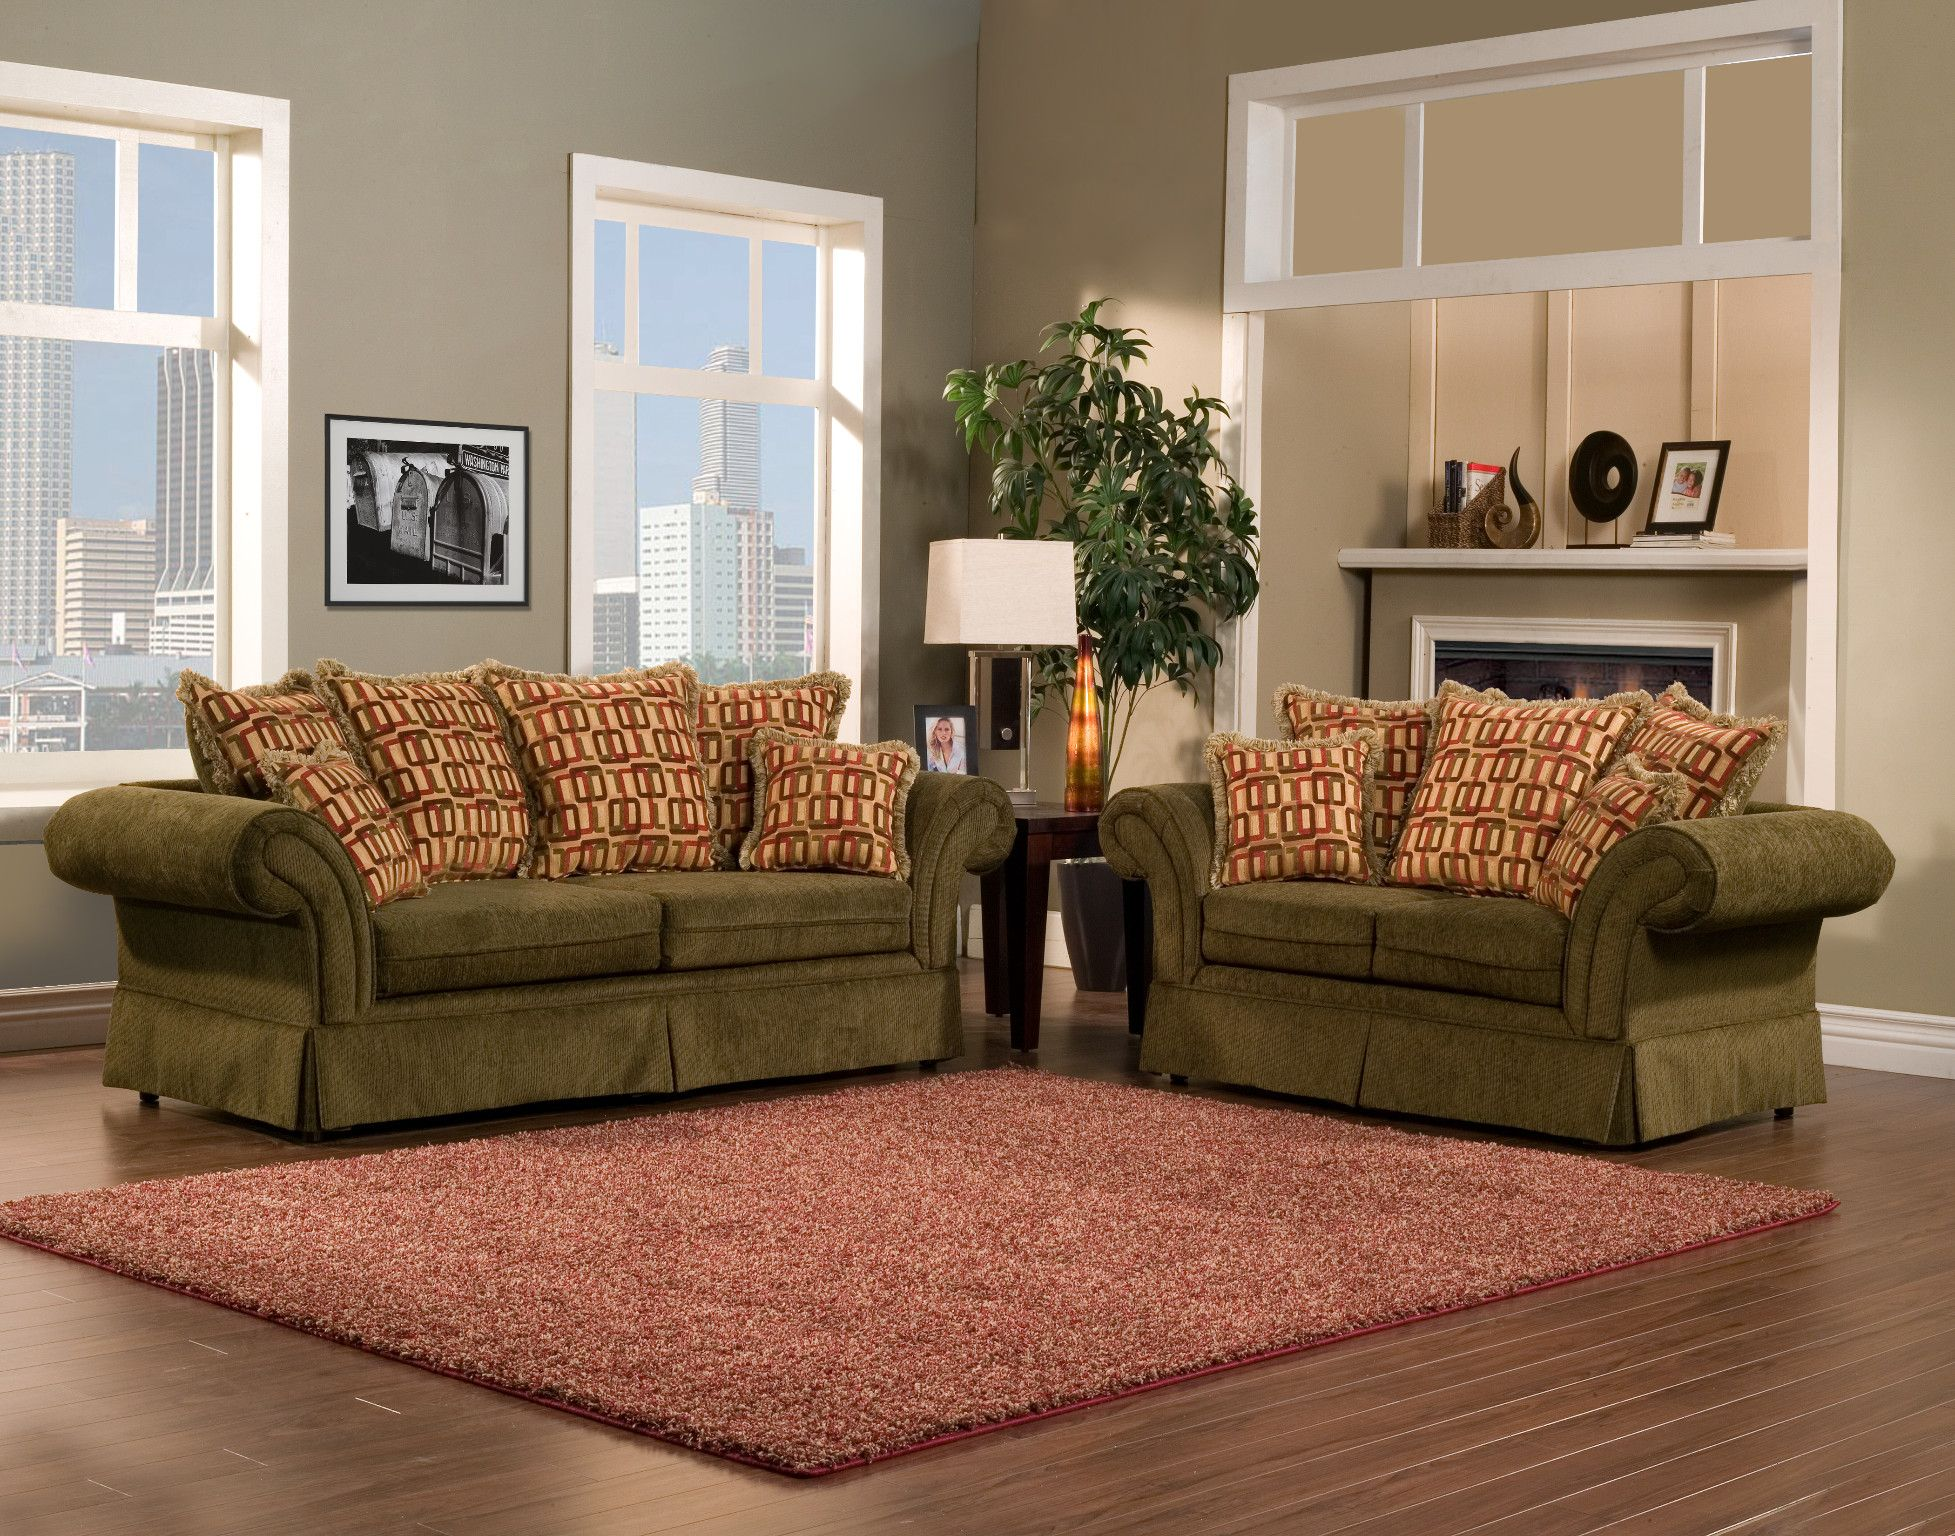 Pleasureable olive green fabric traditional sofa with red for Brown green and cream living room ideas